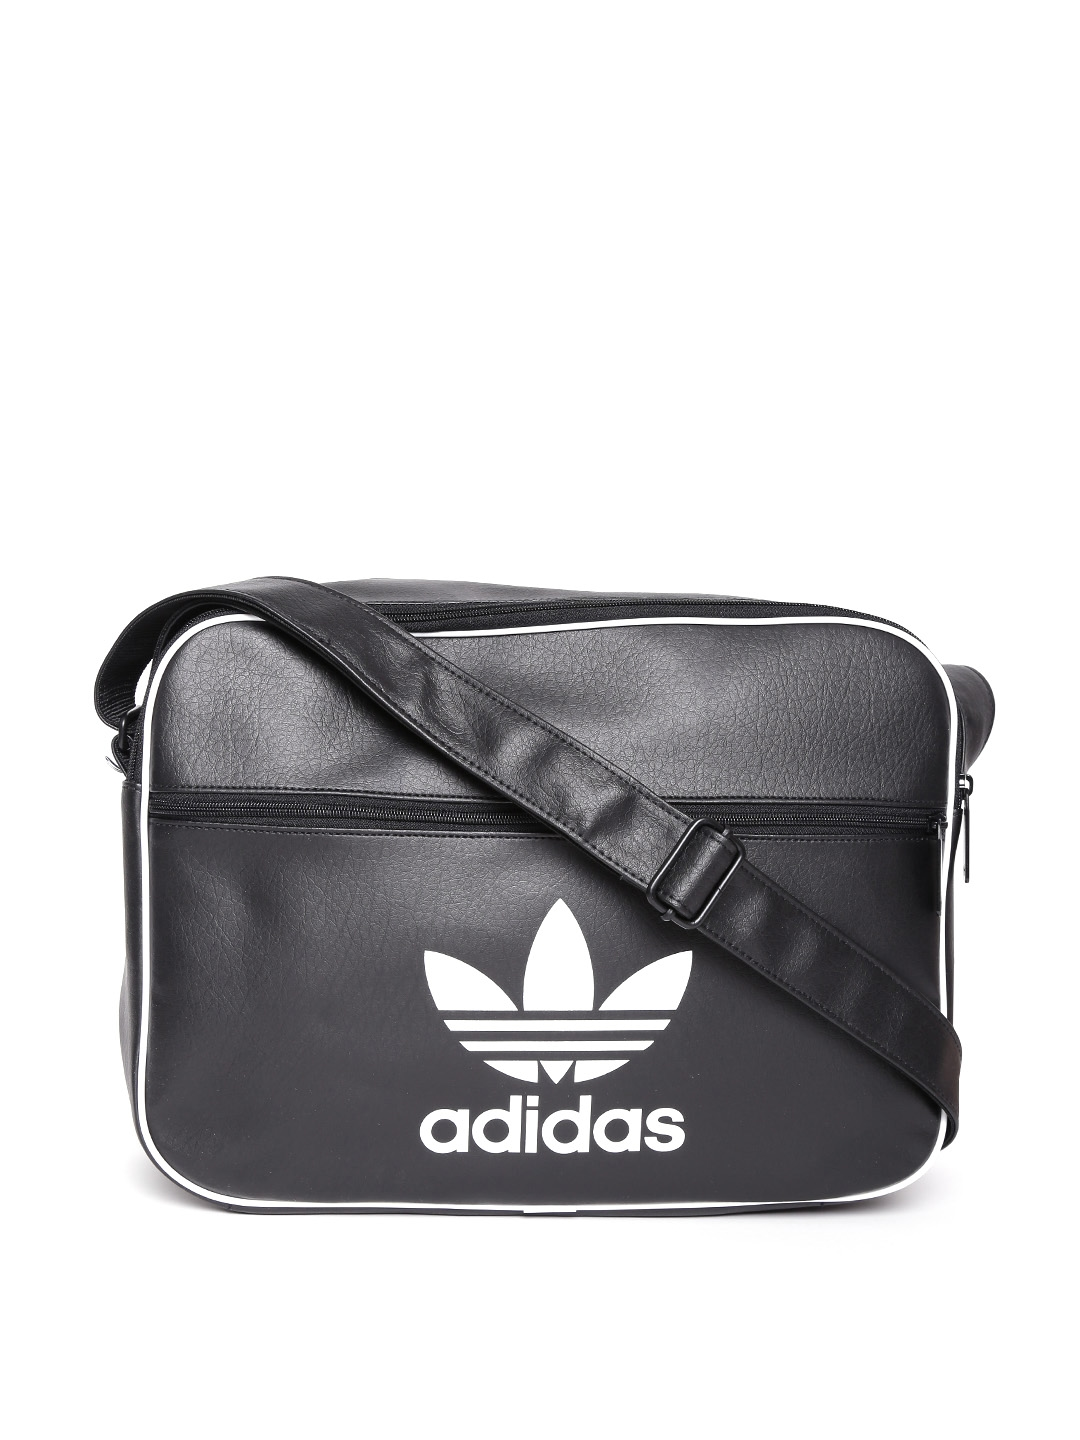 Adidas Originals Messenger Bag